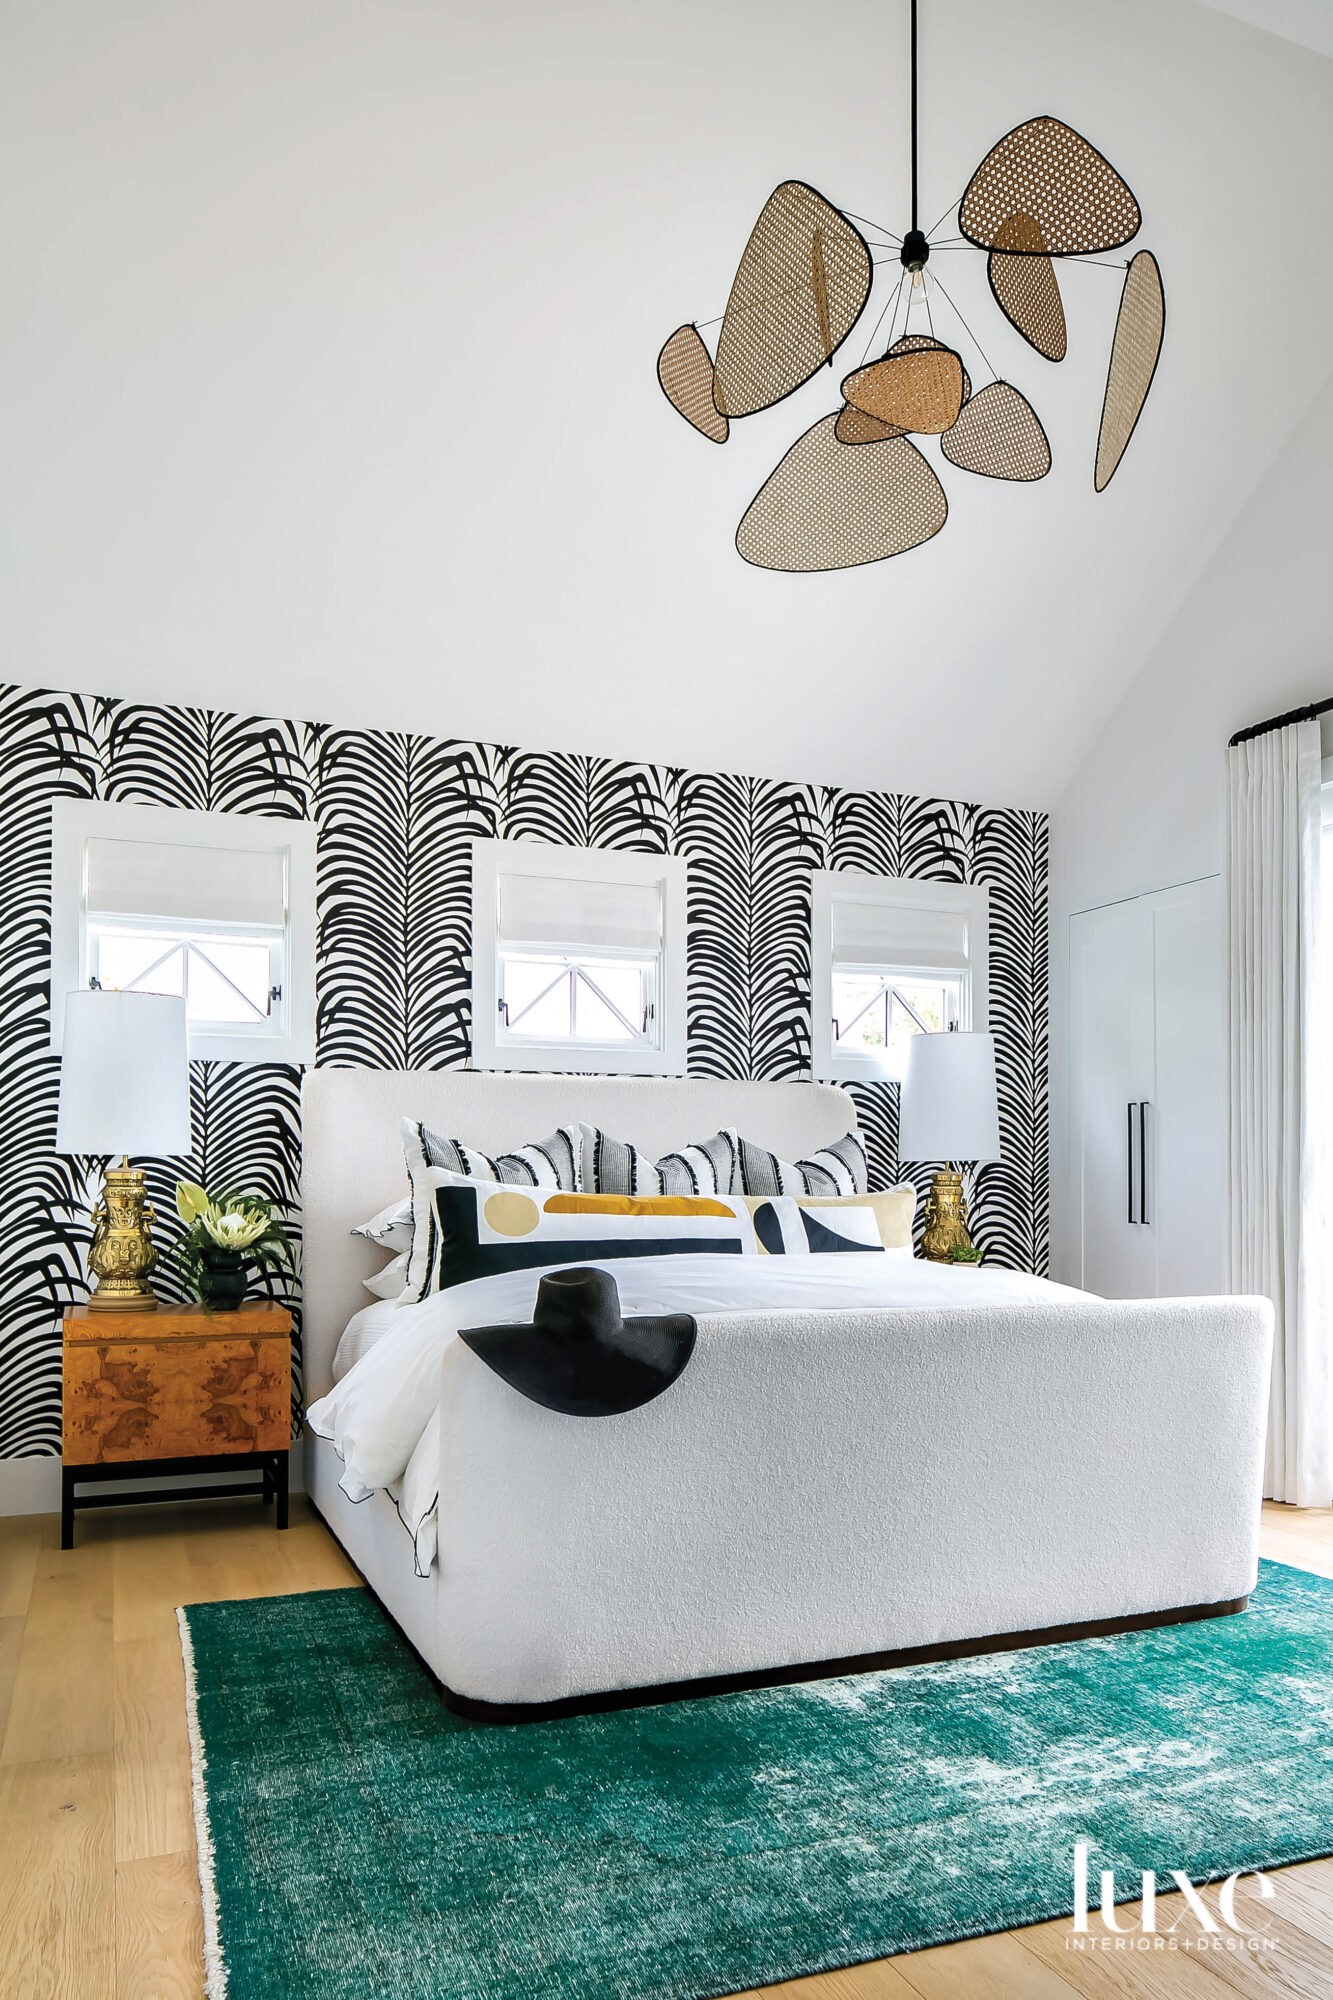 Bed with zebra palm pattern...